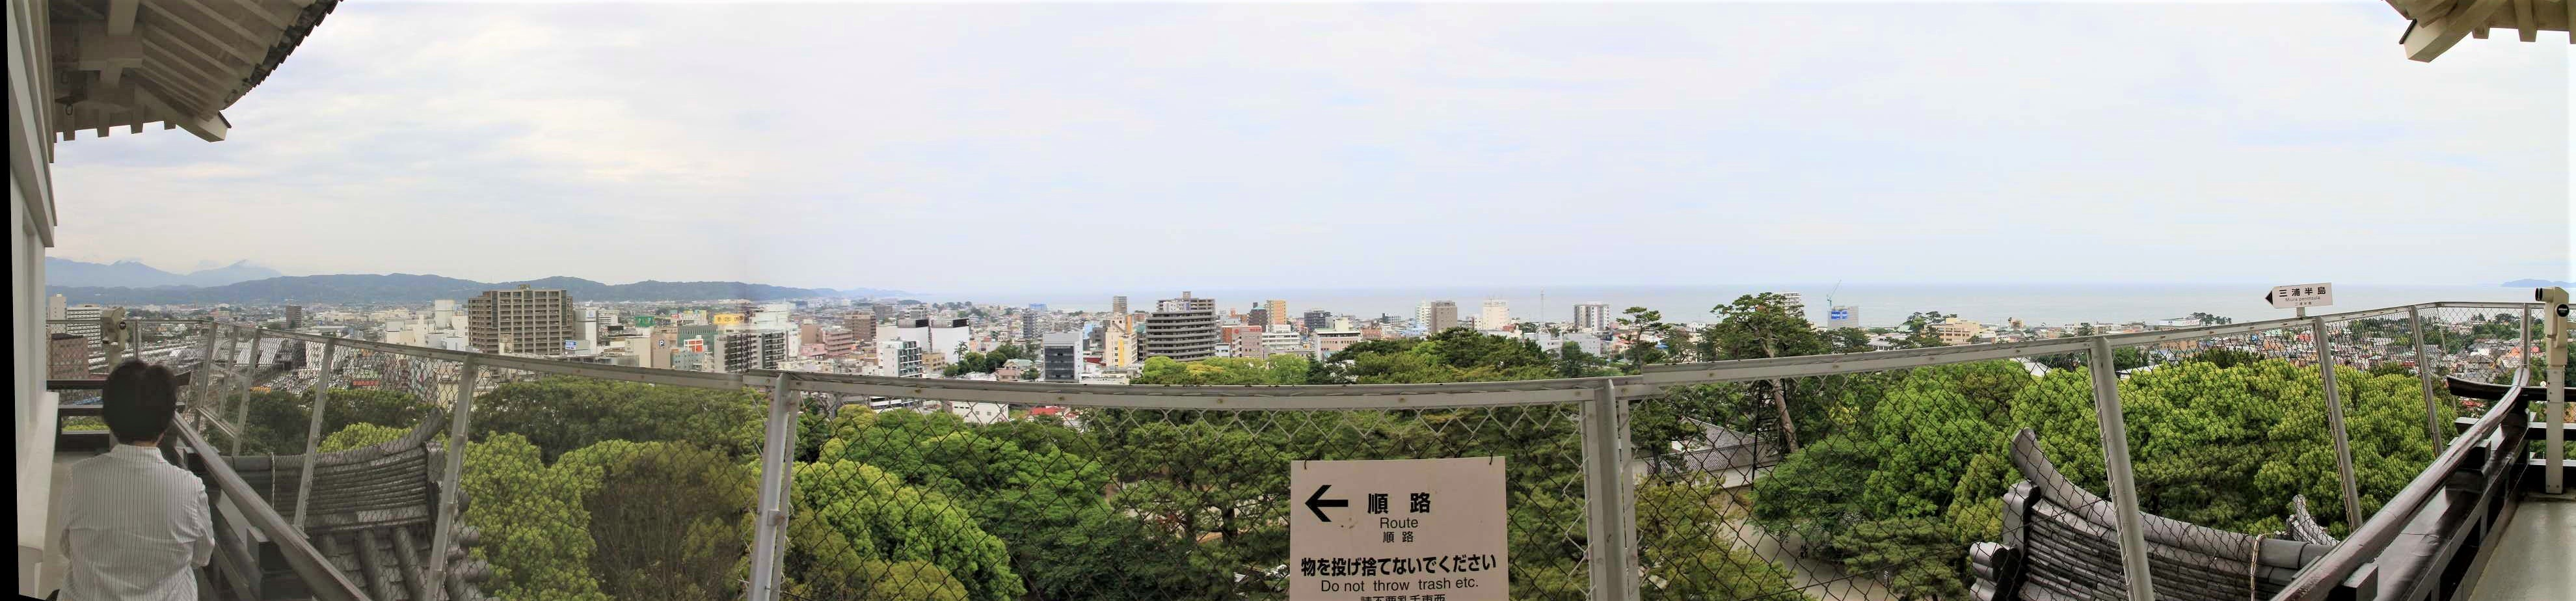 20120605IMG_2352 パノラマ写真